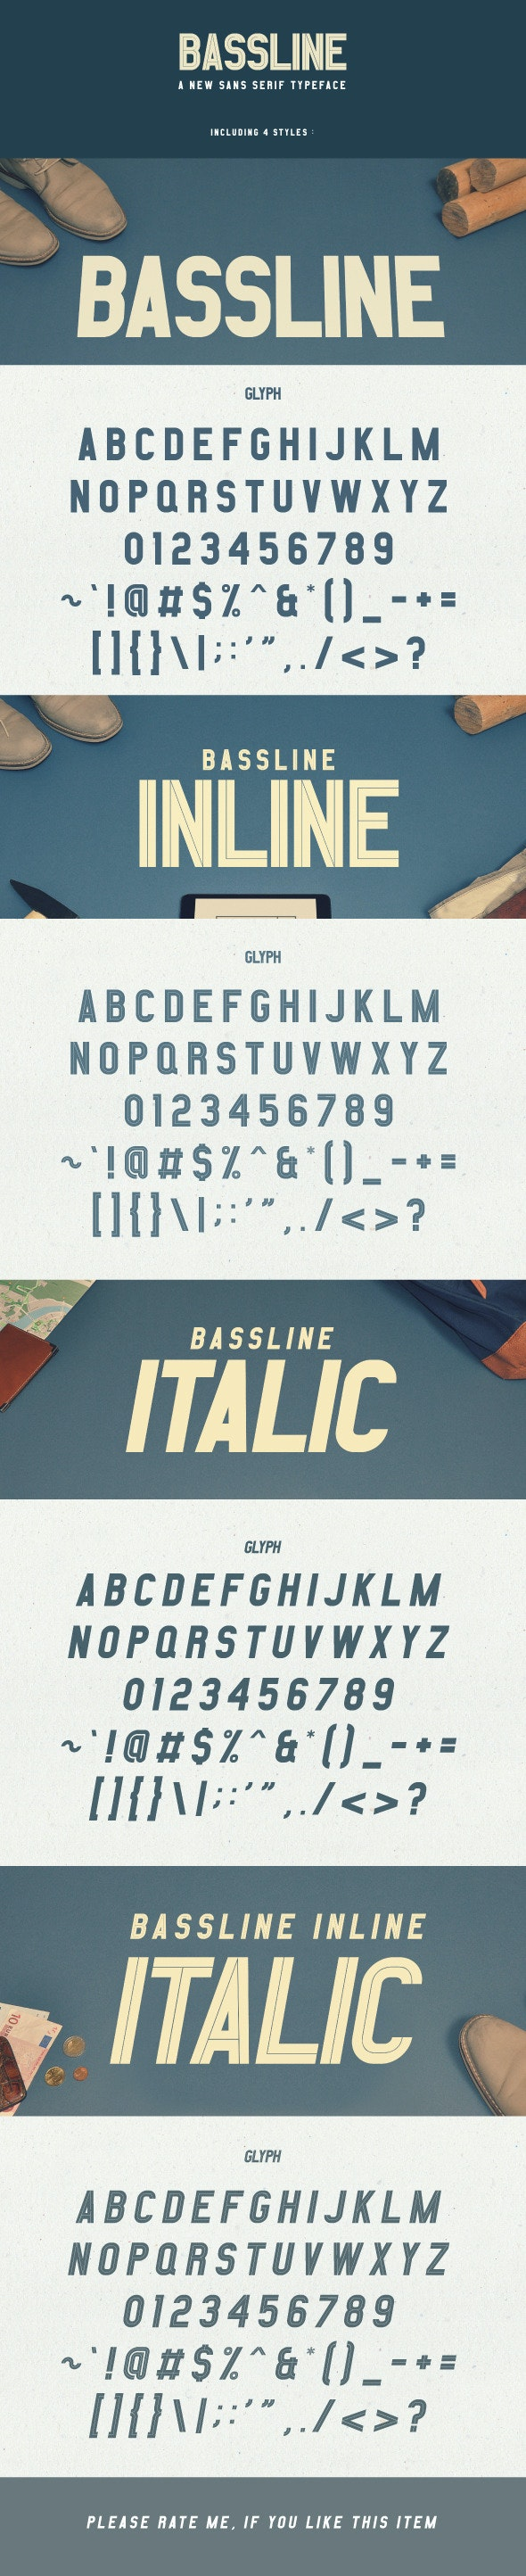 18 Best Sans-Serif Fonts  for March 2019